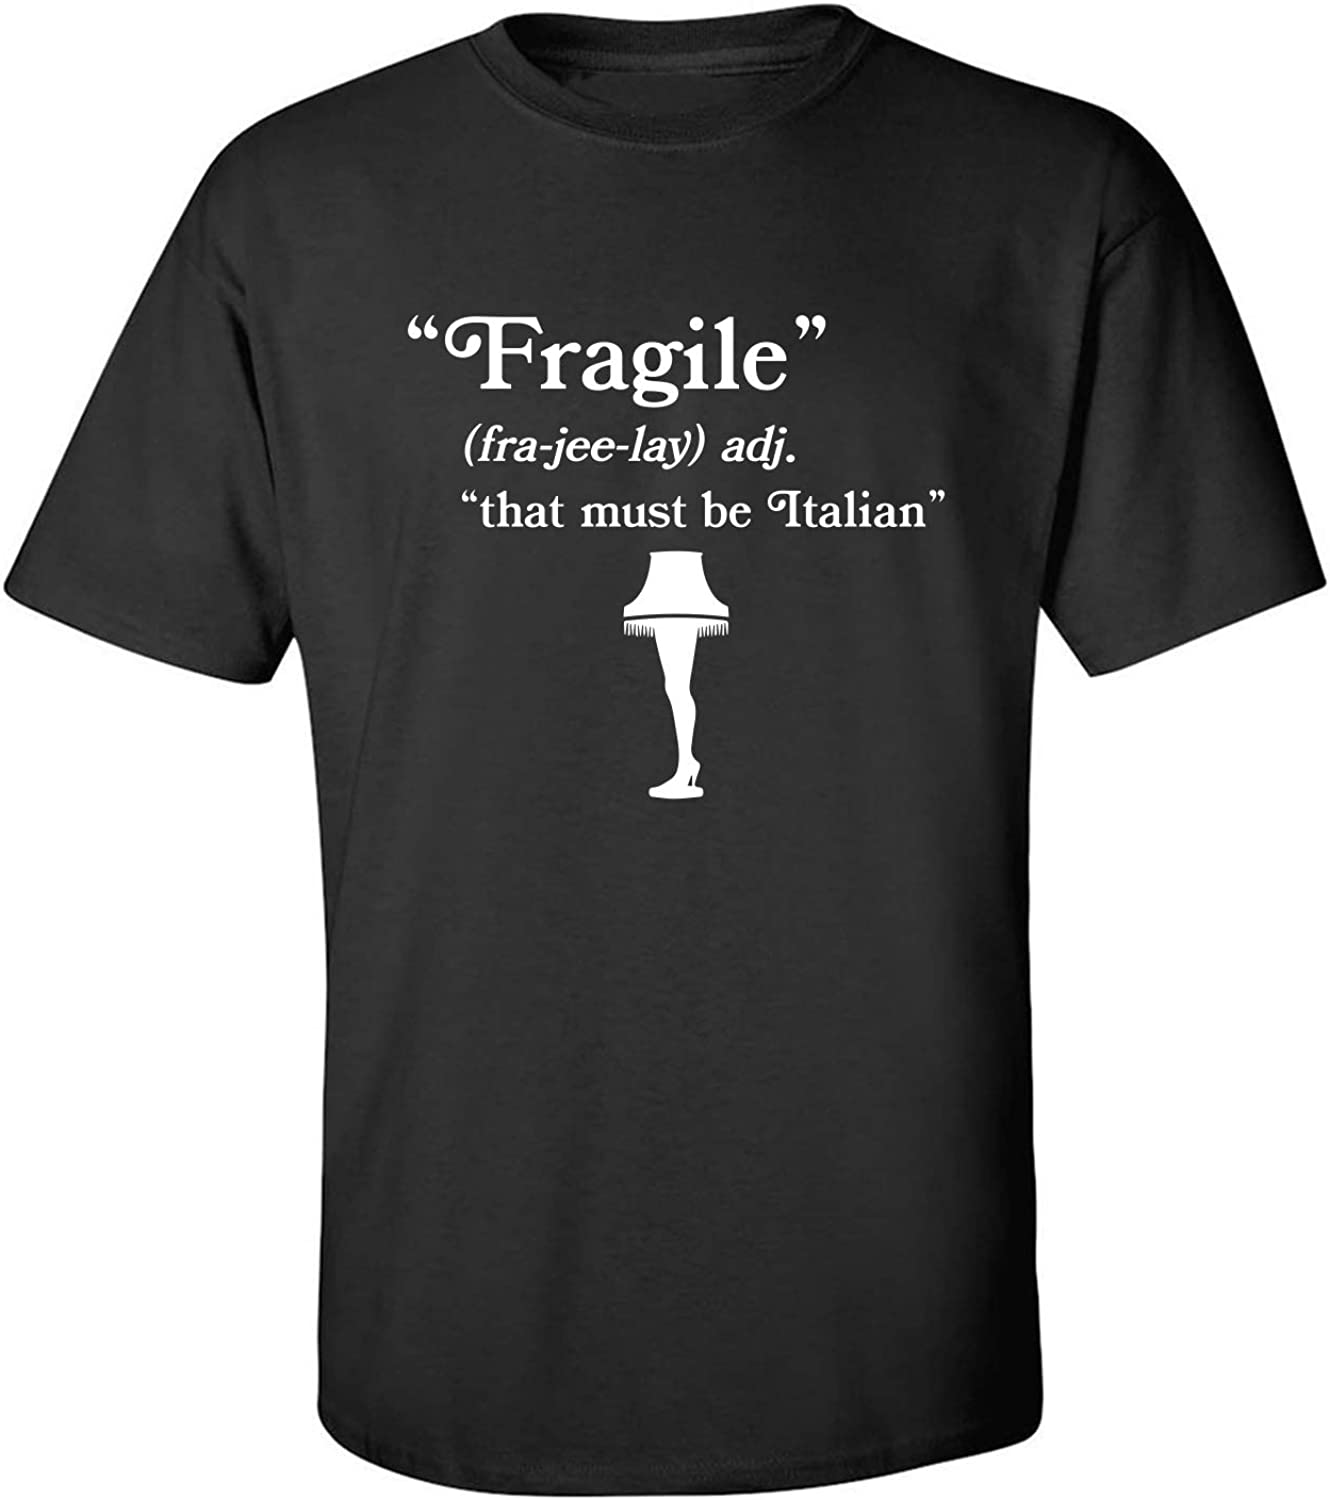 Fragile That Must Be Italian Adult T-Shirt in Black - XXXX-Large